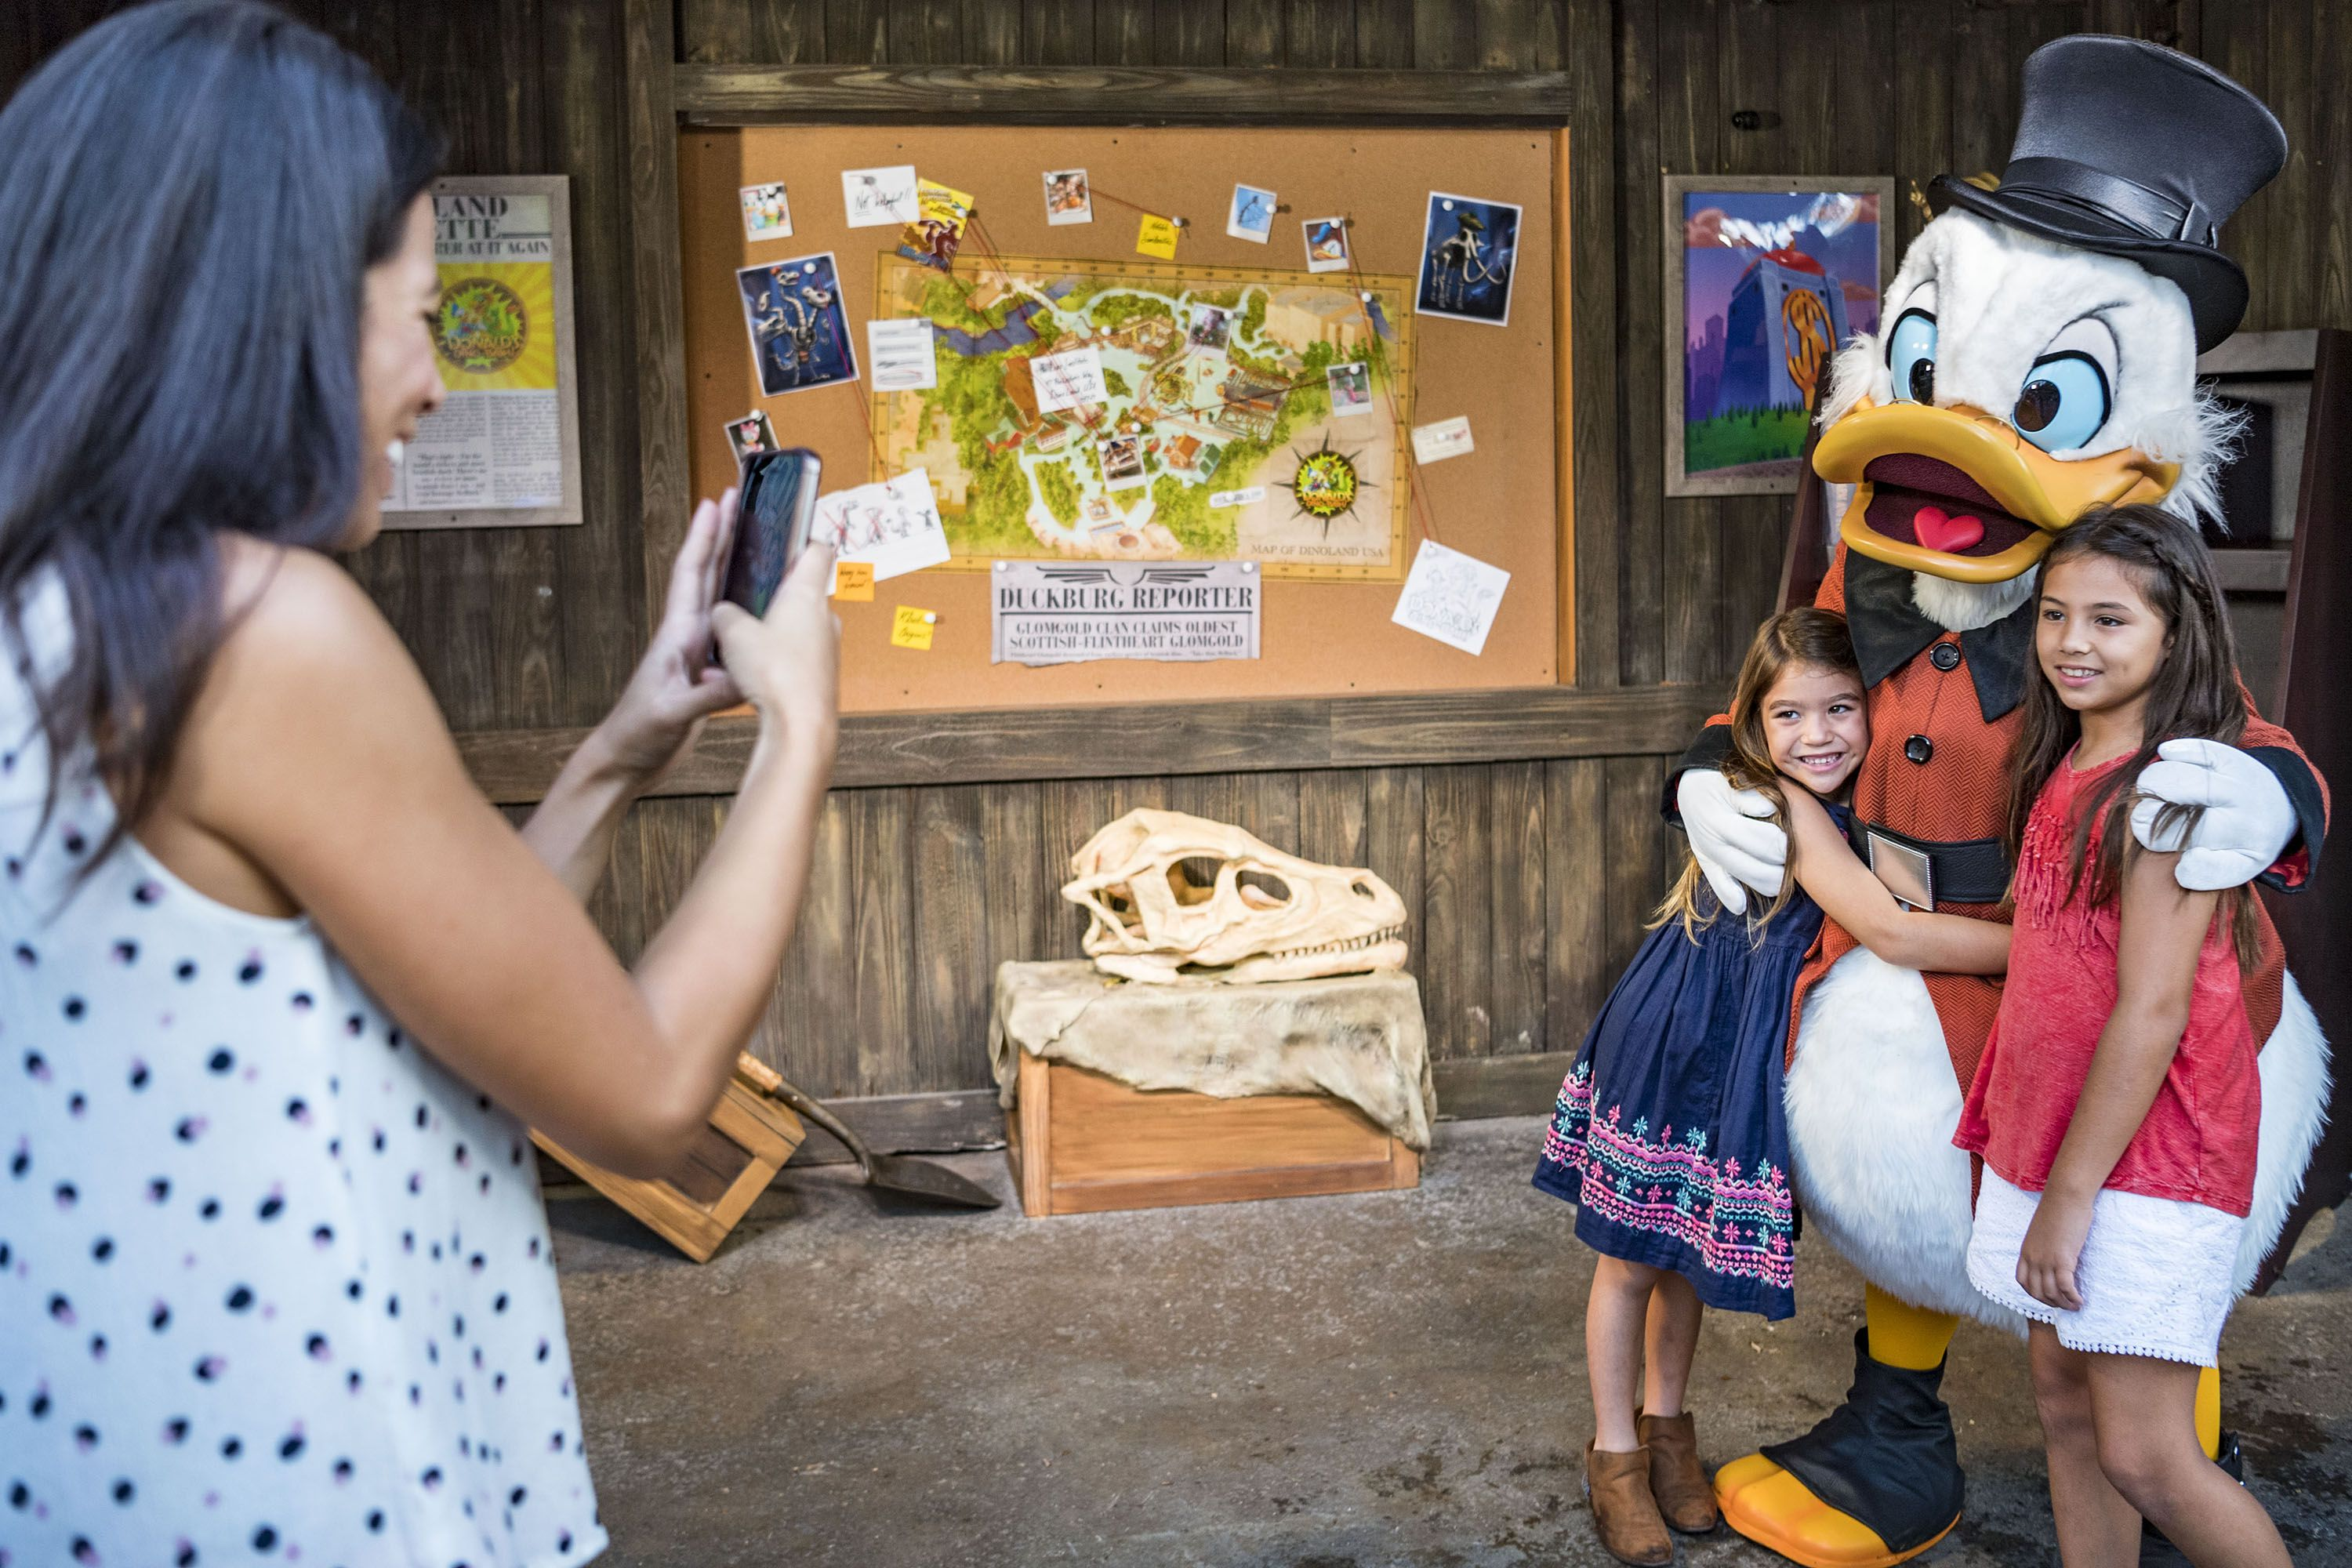 Meet and Greet with Scrooge McDuck